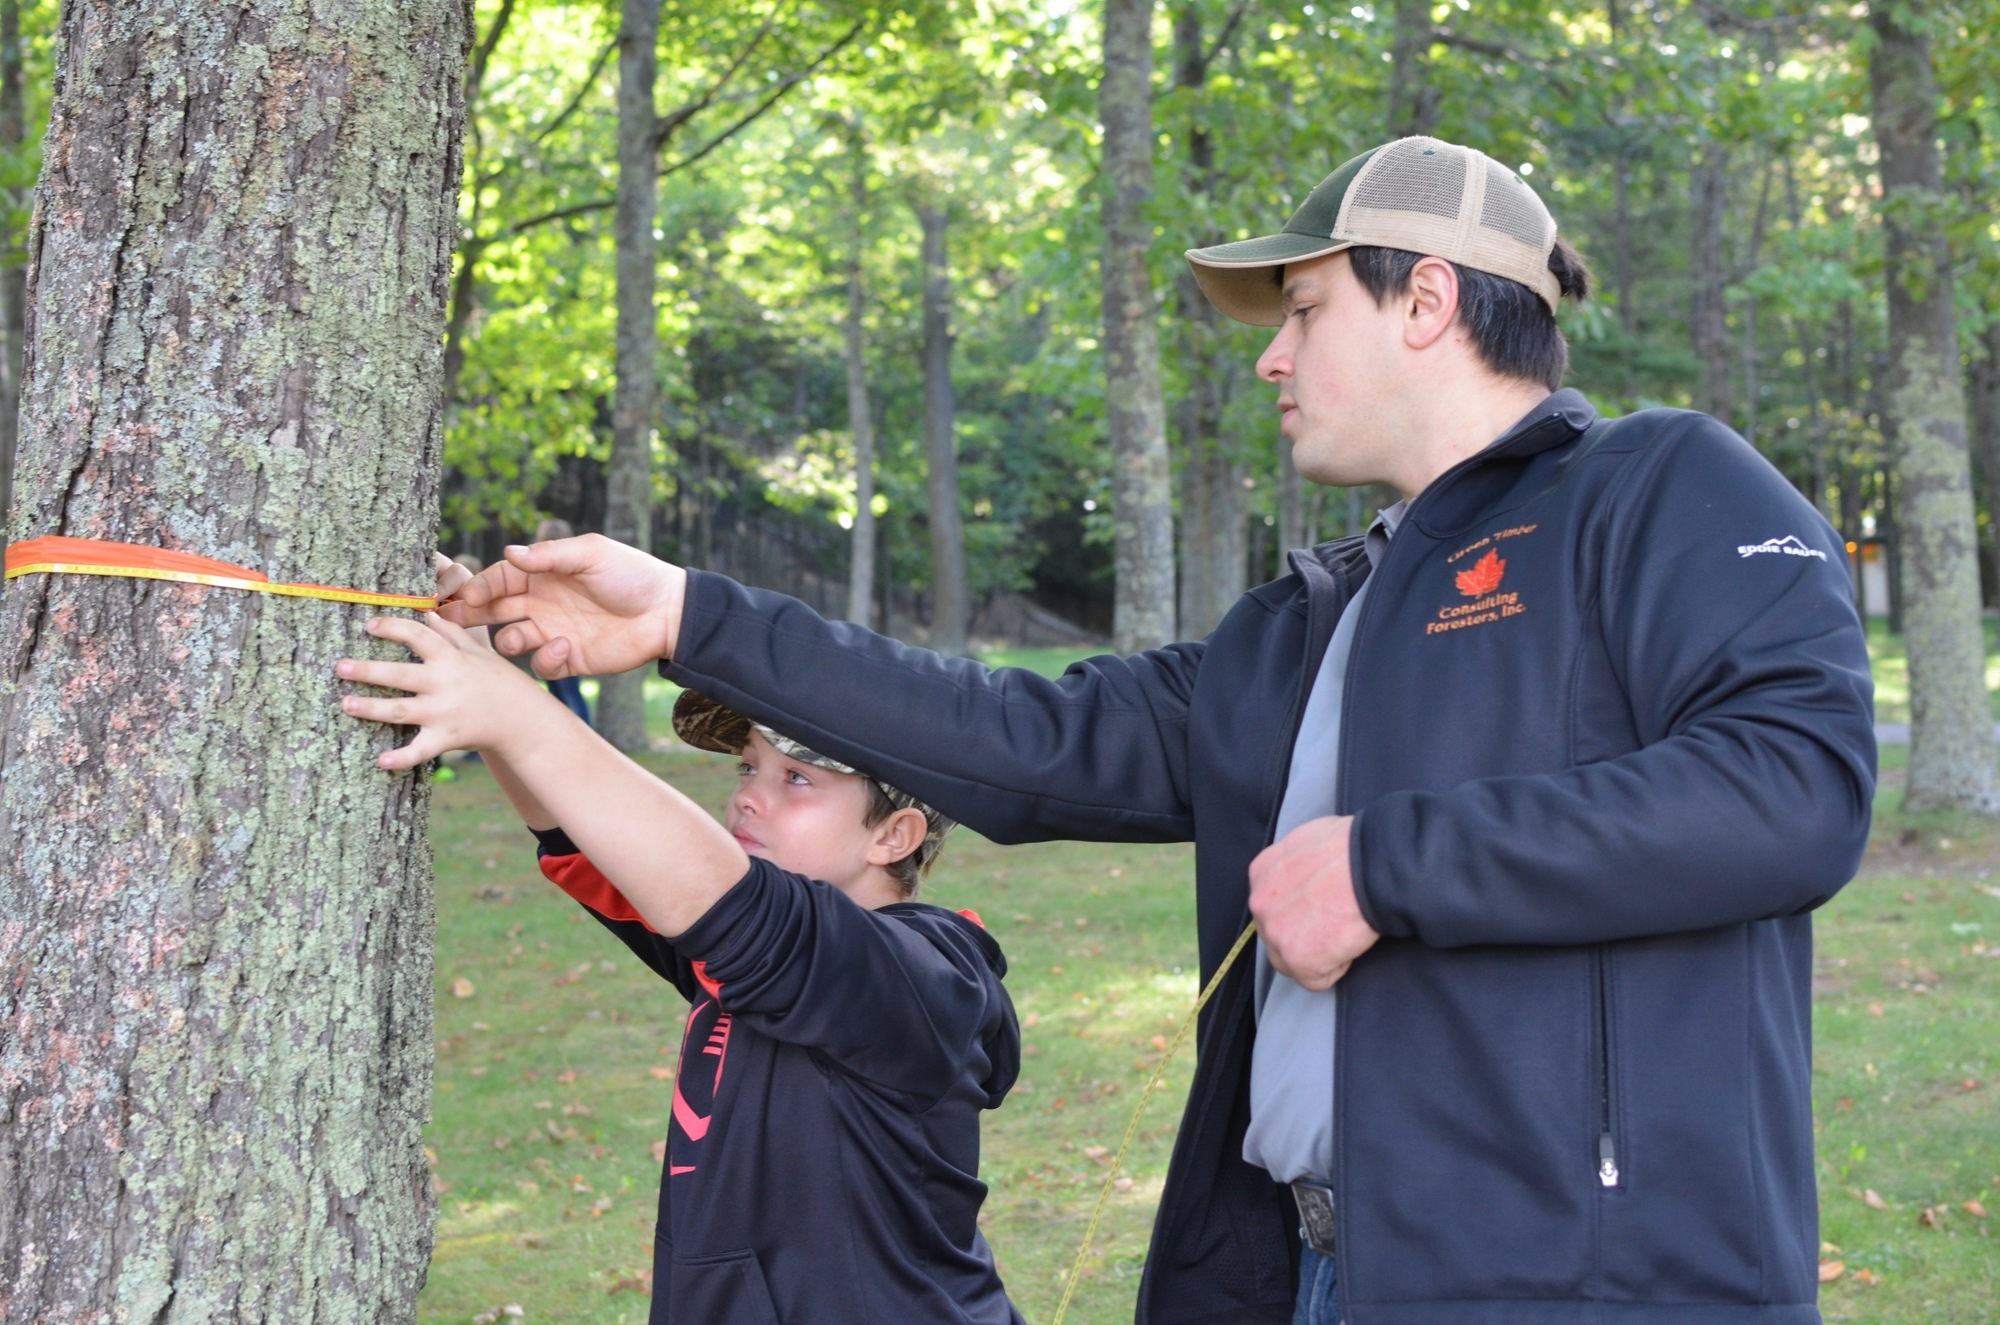 Mike Schreiber, a consulting forester with Green Timber Consulting Foresters, Inc., shows student Brandyn Hintsala how to measure a tree.